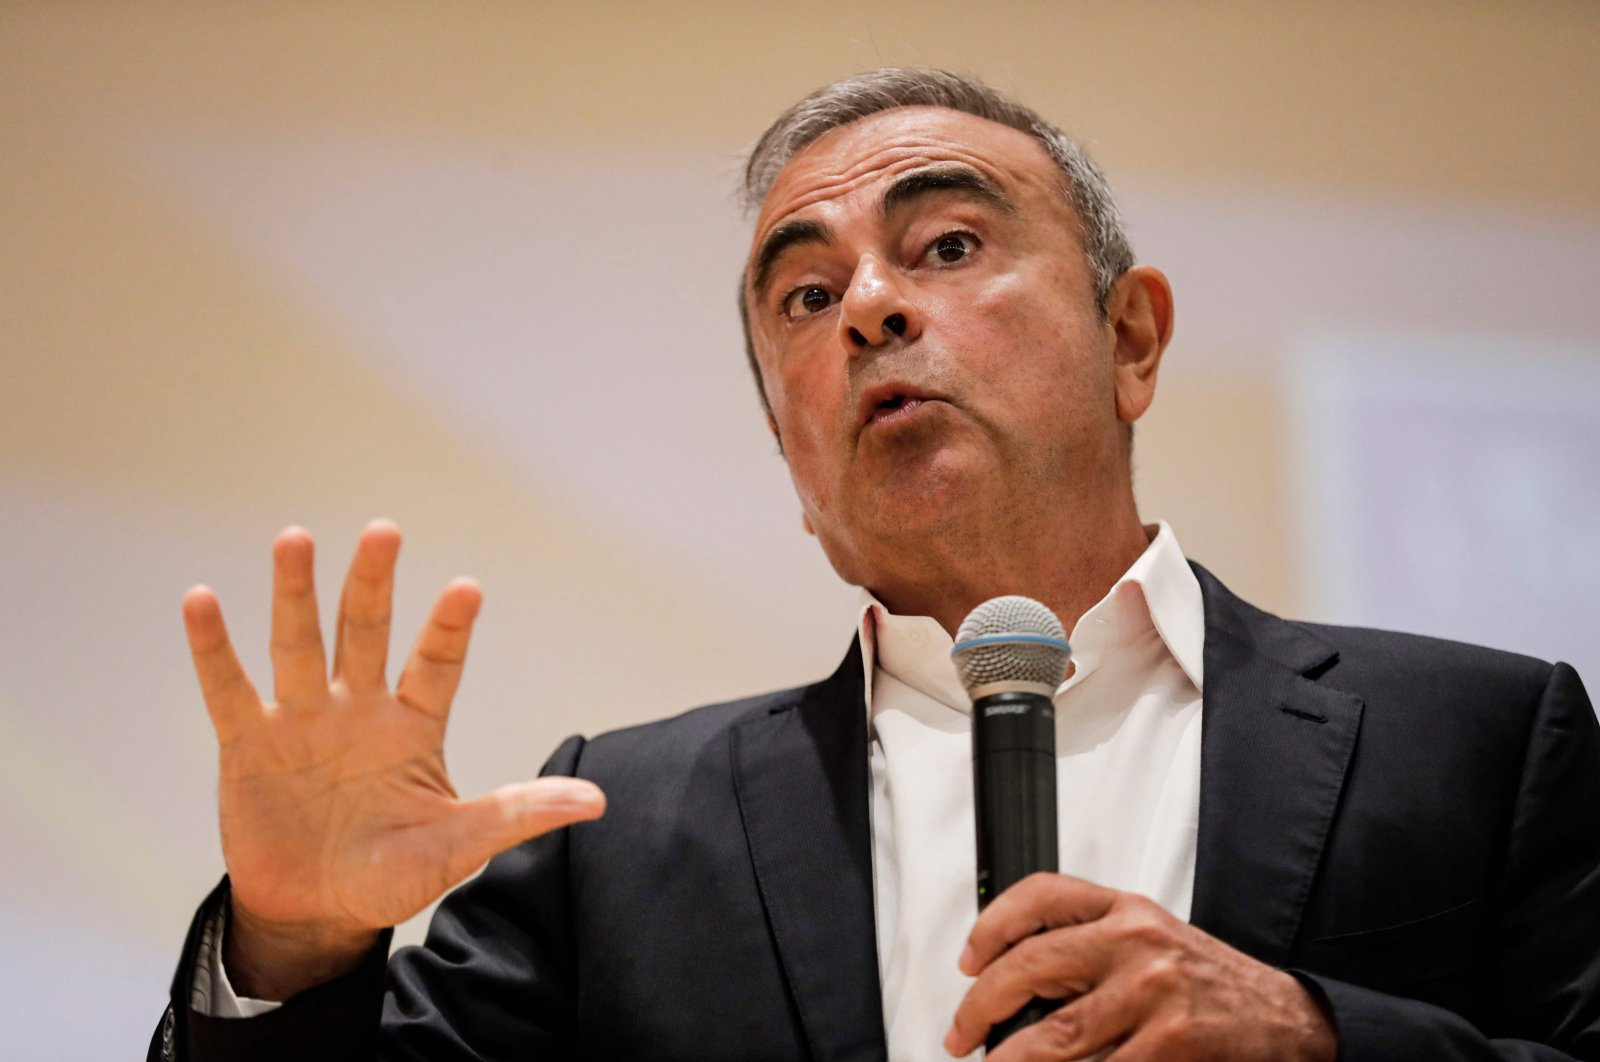 Former Nissan Motor Co. Chairman Carlos Ghosn speaks during a press conference in Jounieh, northern Lebanon, Sept. 29, 2020. (AFP Photo)